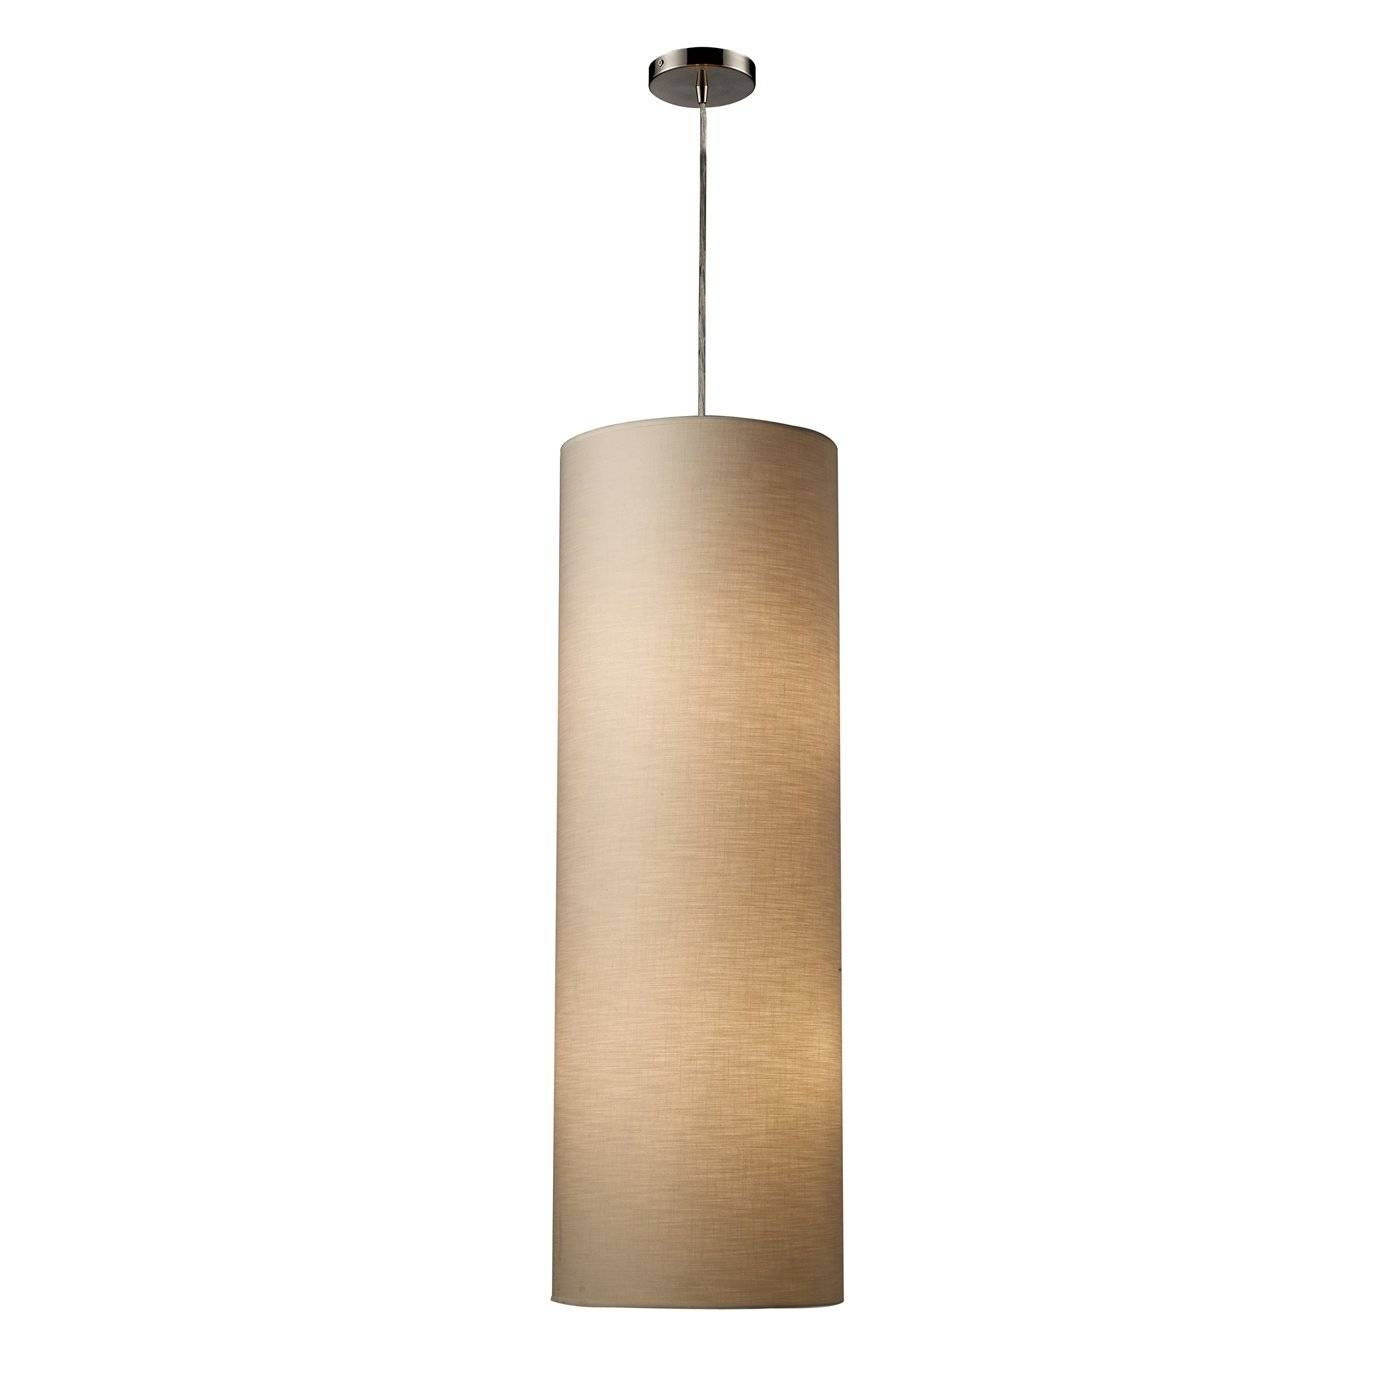 Westmore Lighting 4 Light Fabric Cylinder Large Pendant | Lowe's Intended For Cylinder Pendant Lights (View 2 of 15)